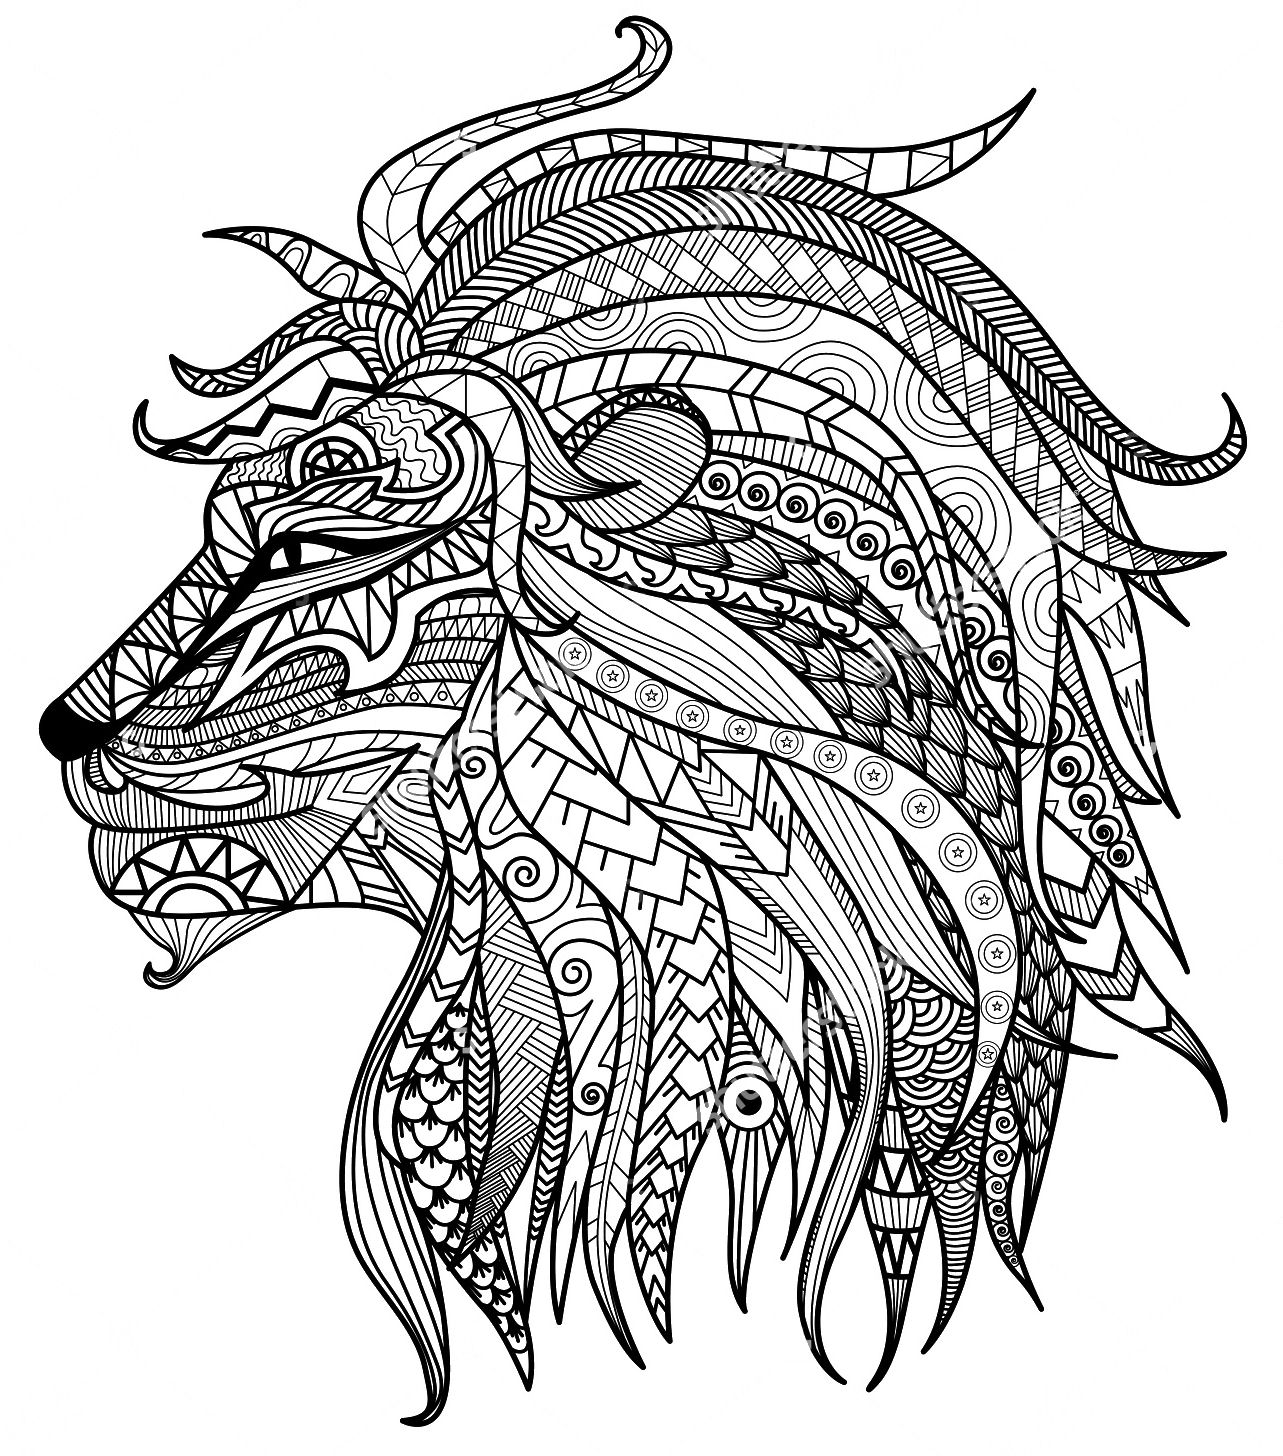 lion face coloring page lion face coloring pages getcoloringpagescom lion page face coloring